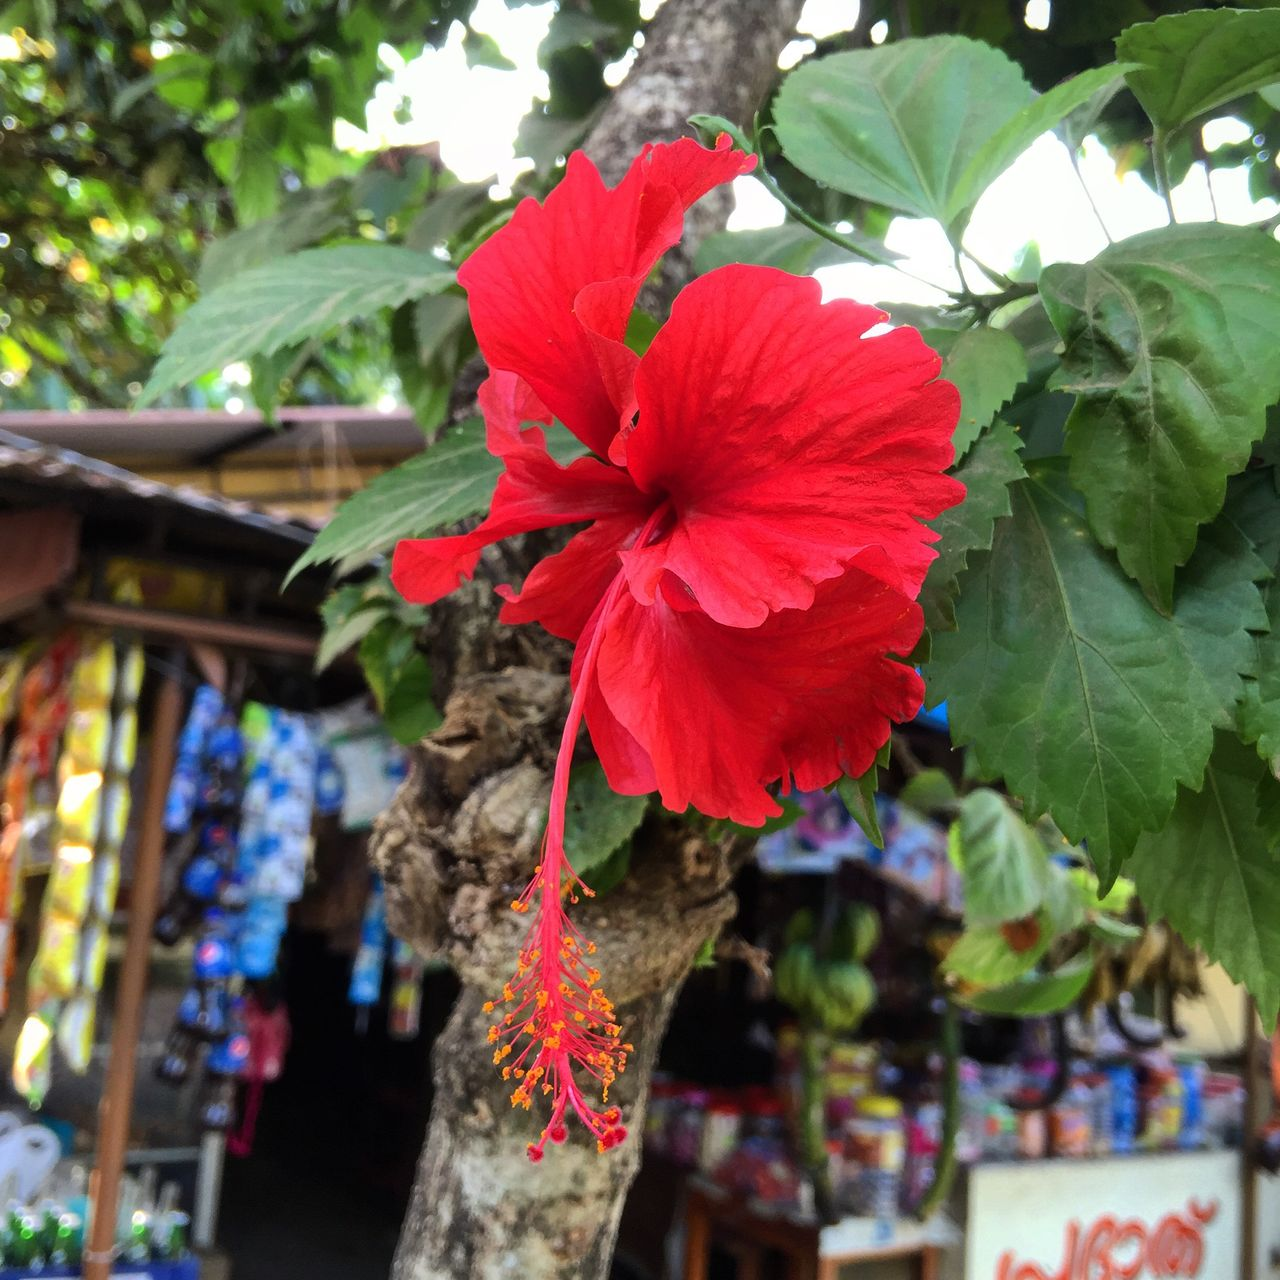 flower, red, day, outdoors, no people, fragility, growth, nature, hibiscus, petal, freshness, beauty in nature, plant, flower head, blooming, close-up, architecture, petunia